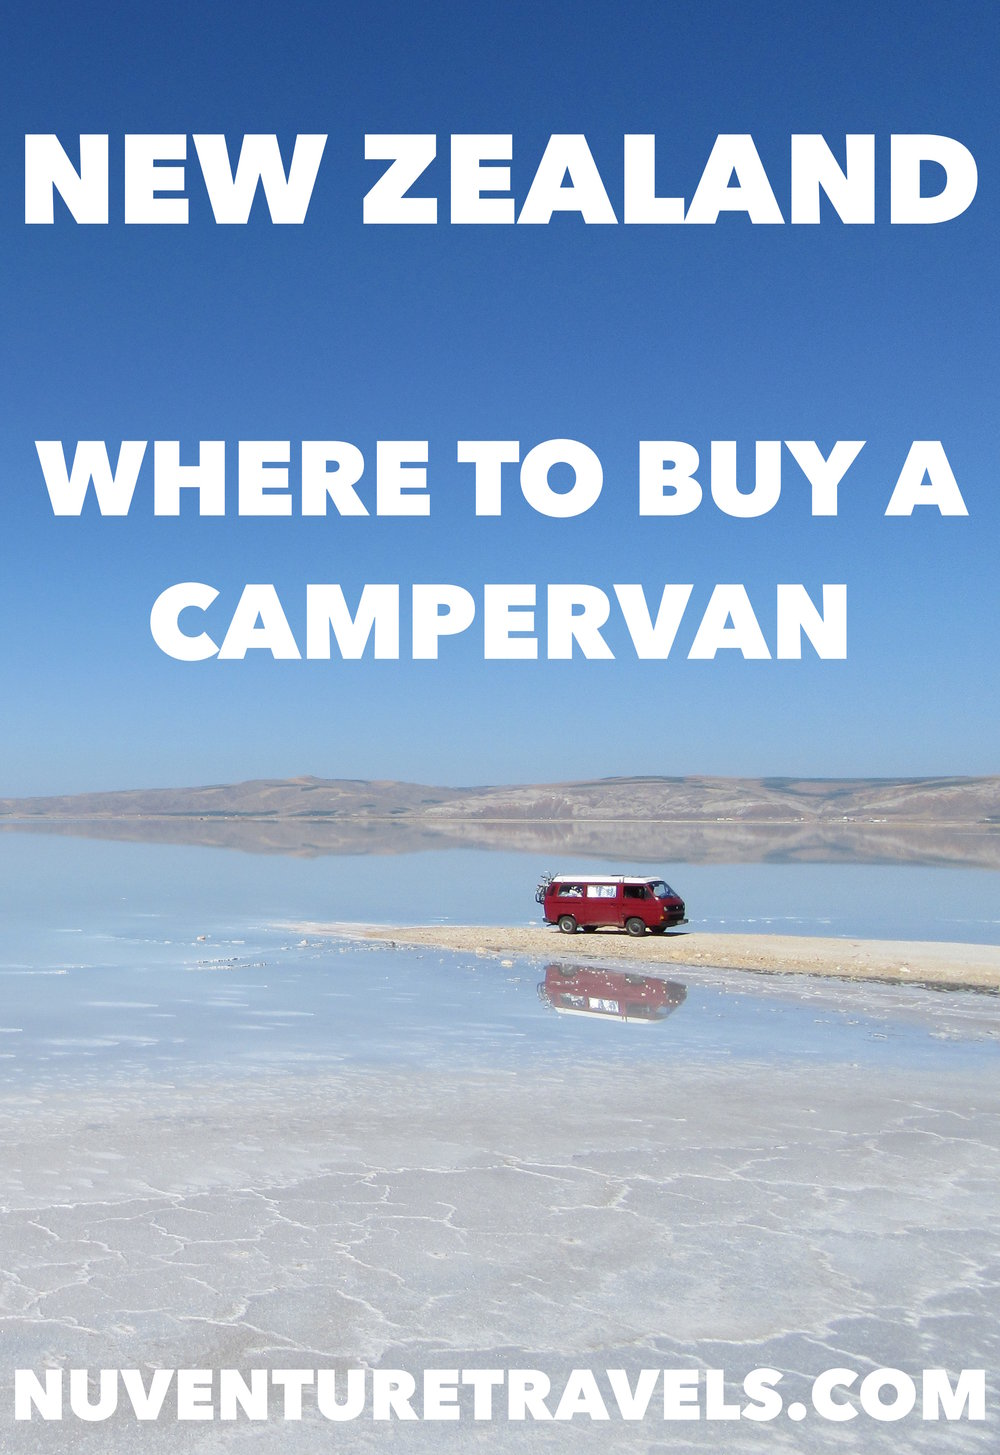 Where Should You Buy and Sell a Campervan in New Zealand? Auckland or Christchurch?